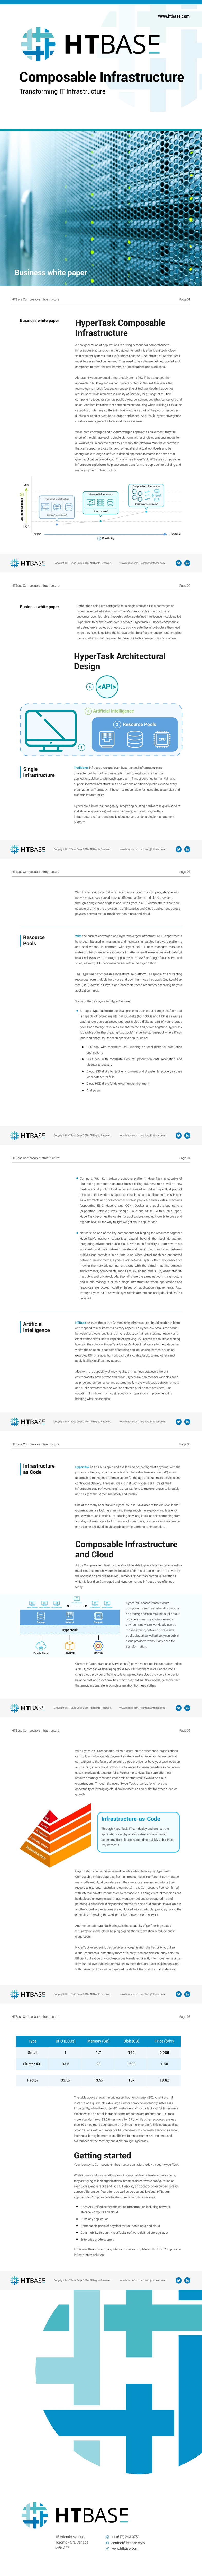 White paper for a tech startup